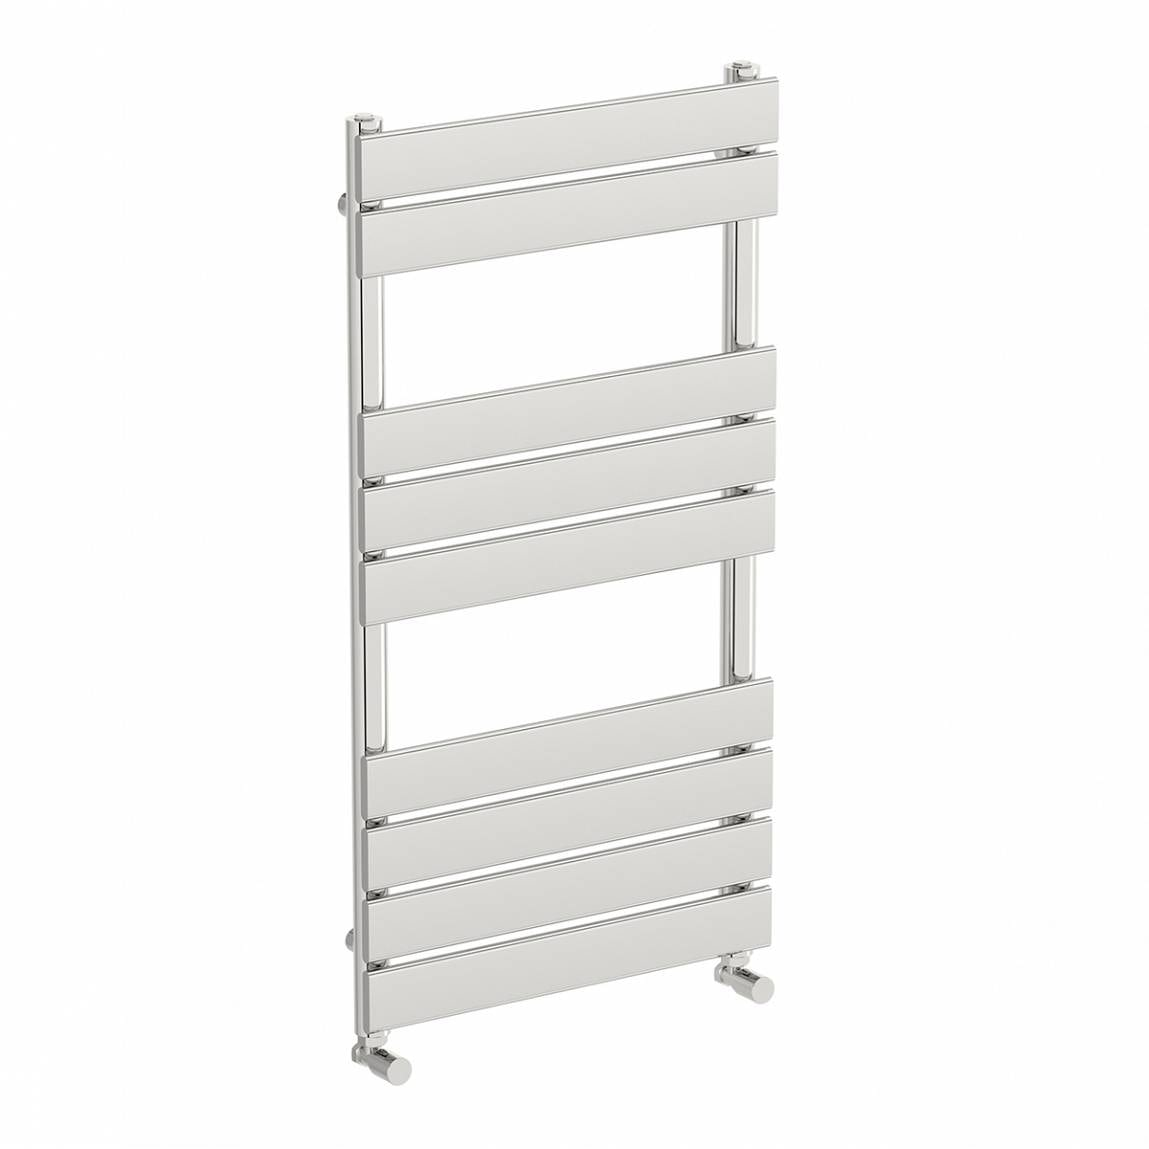 Image of Signelle heated towel rail 950 x 500